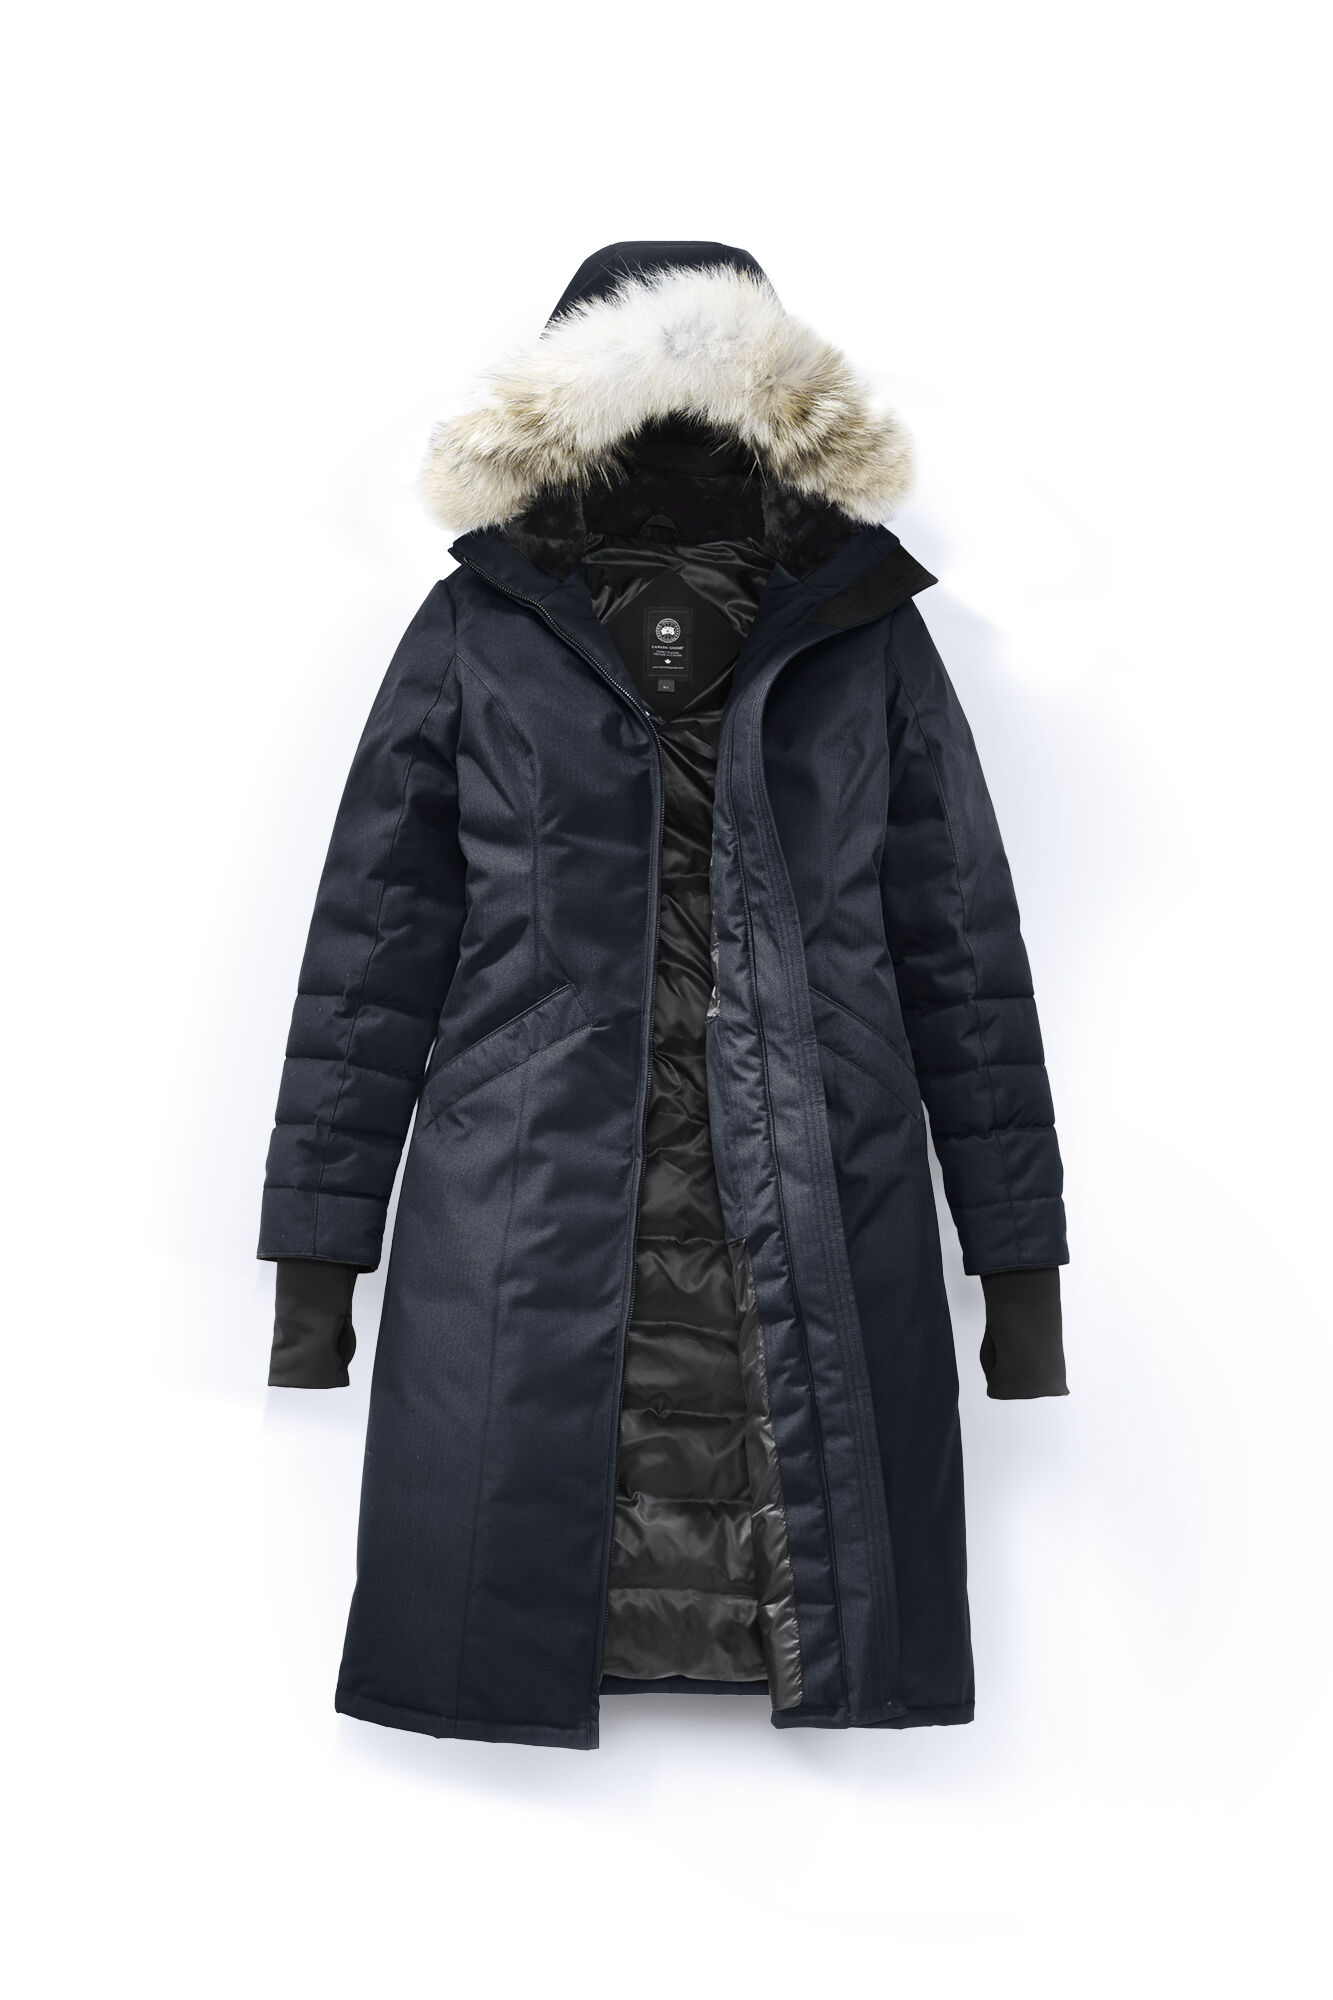 Canada Goose' Expedition Parka Black Kids